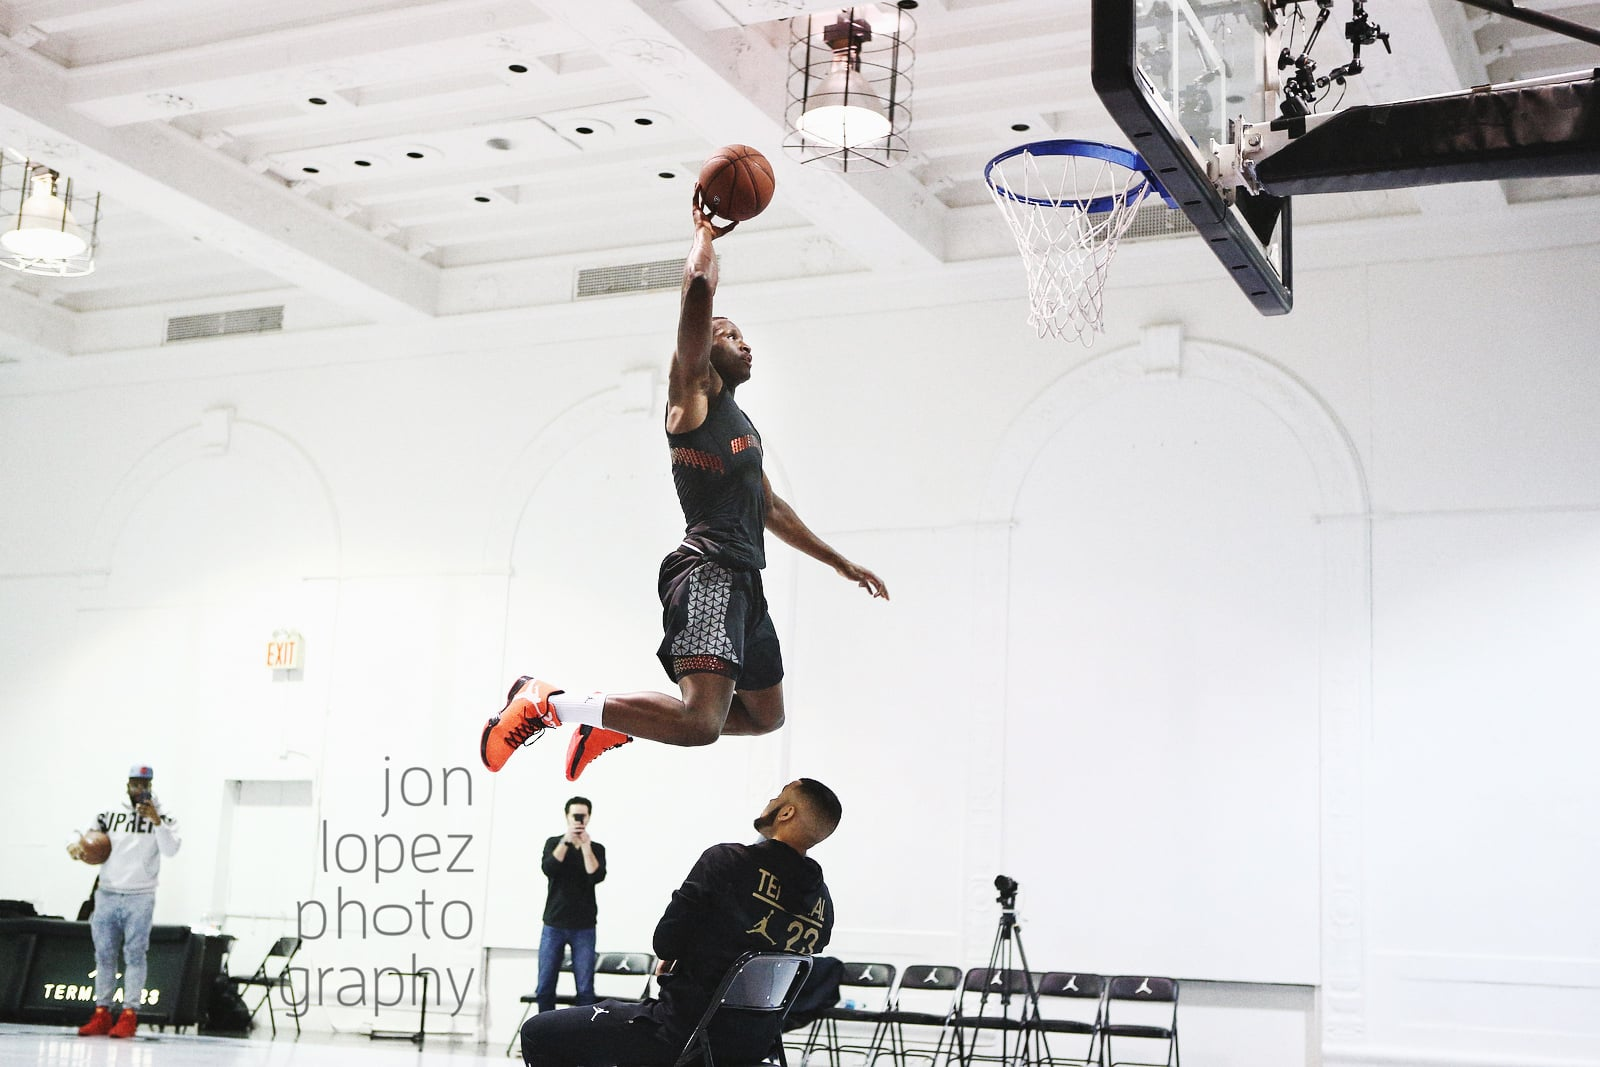 Jordan Brand athlete and Orlando Magic guard Victor Oladipo practiced for the NBA All-Star Weekend dunk contest at Jordan Terminal 23 where I was on hand to create my shots from the sidelines.